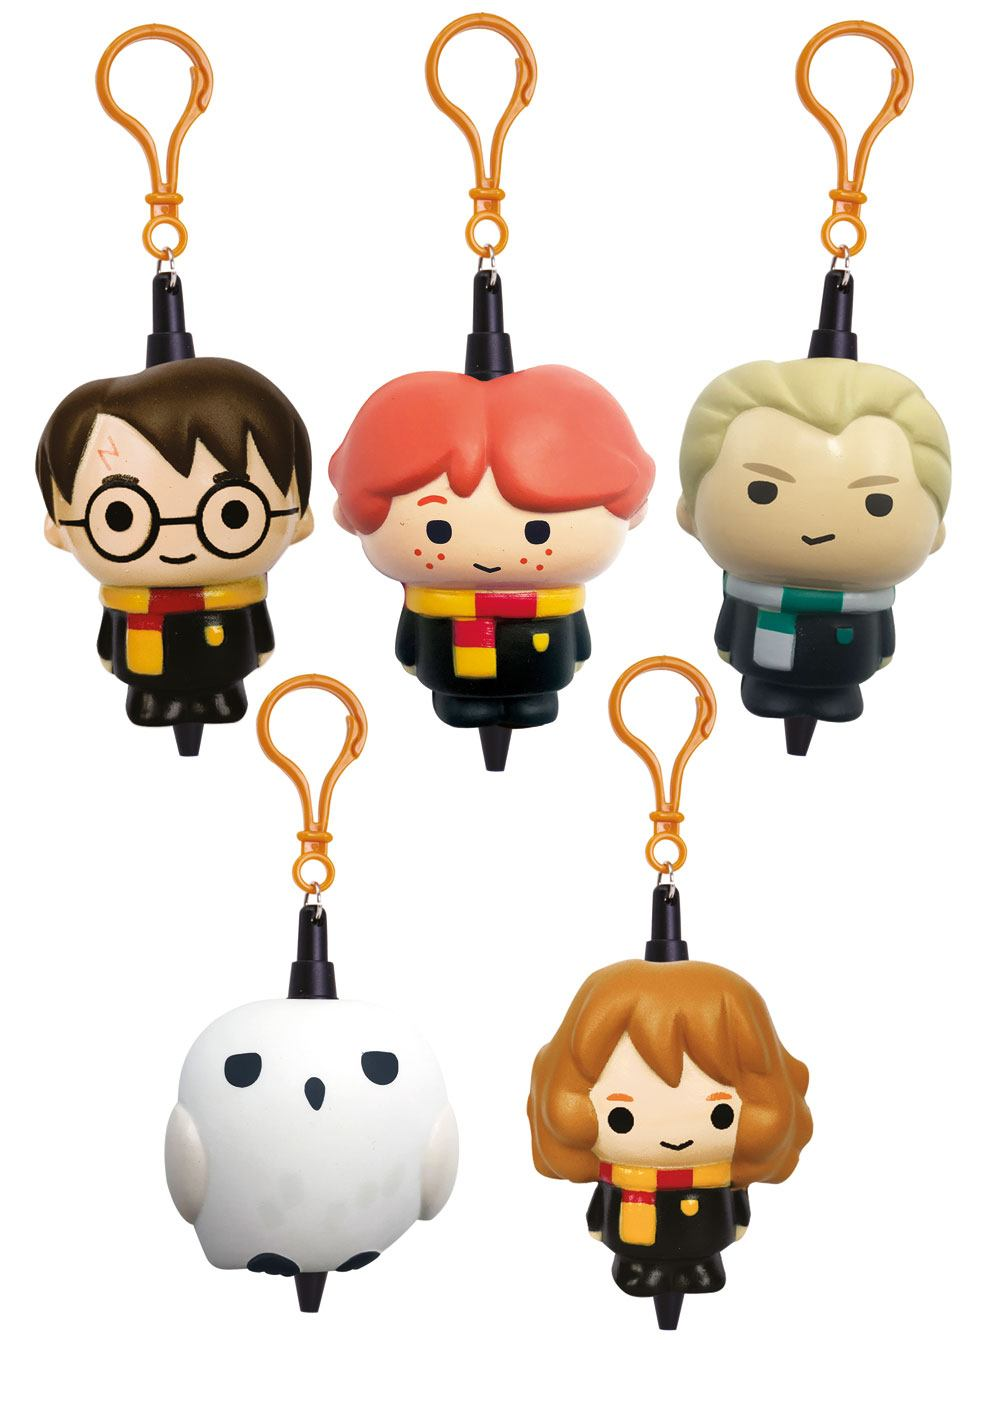 Harry Potter Squishies Rubber Keychain / Mini Pen Display (25)